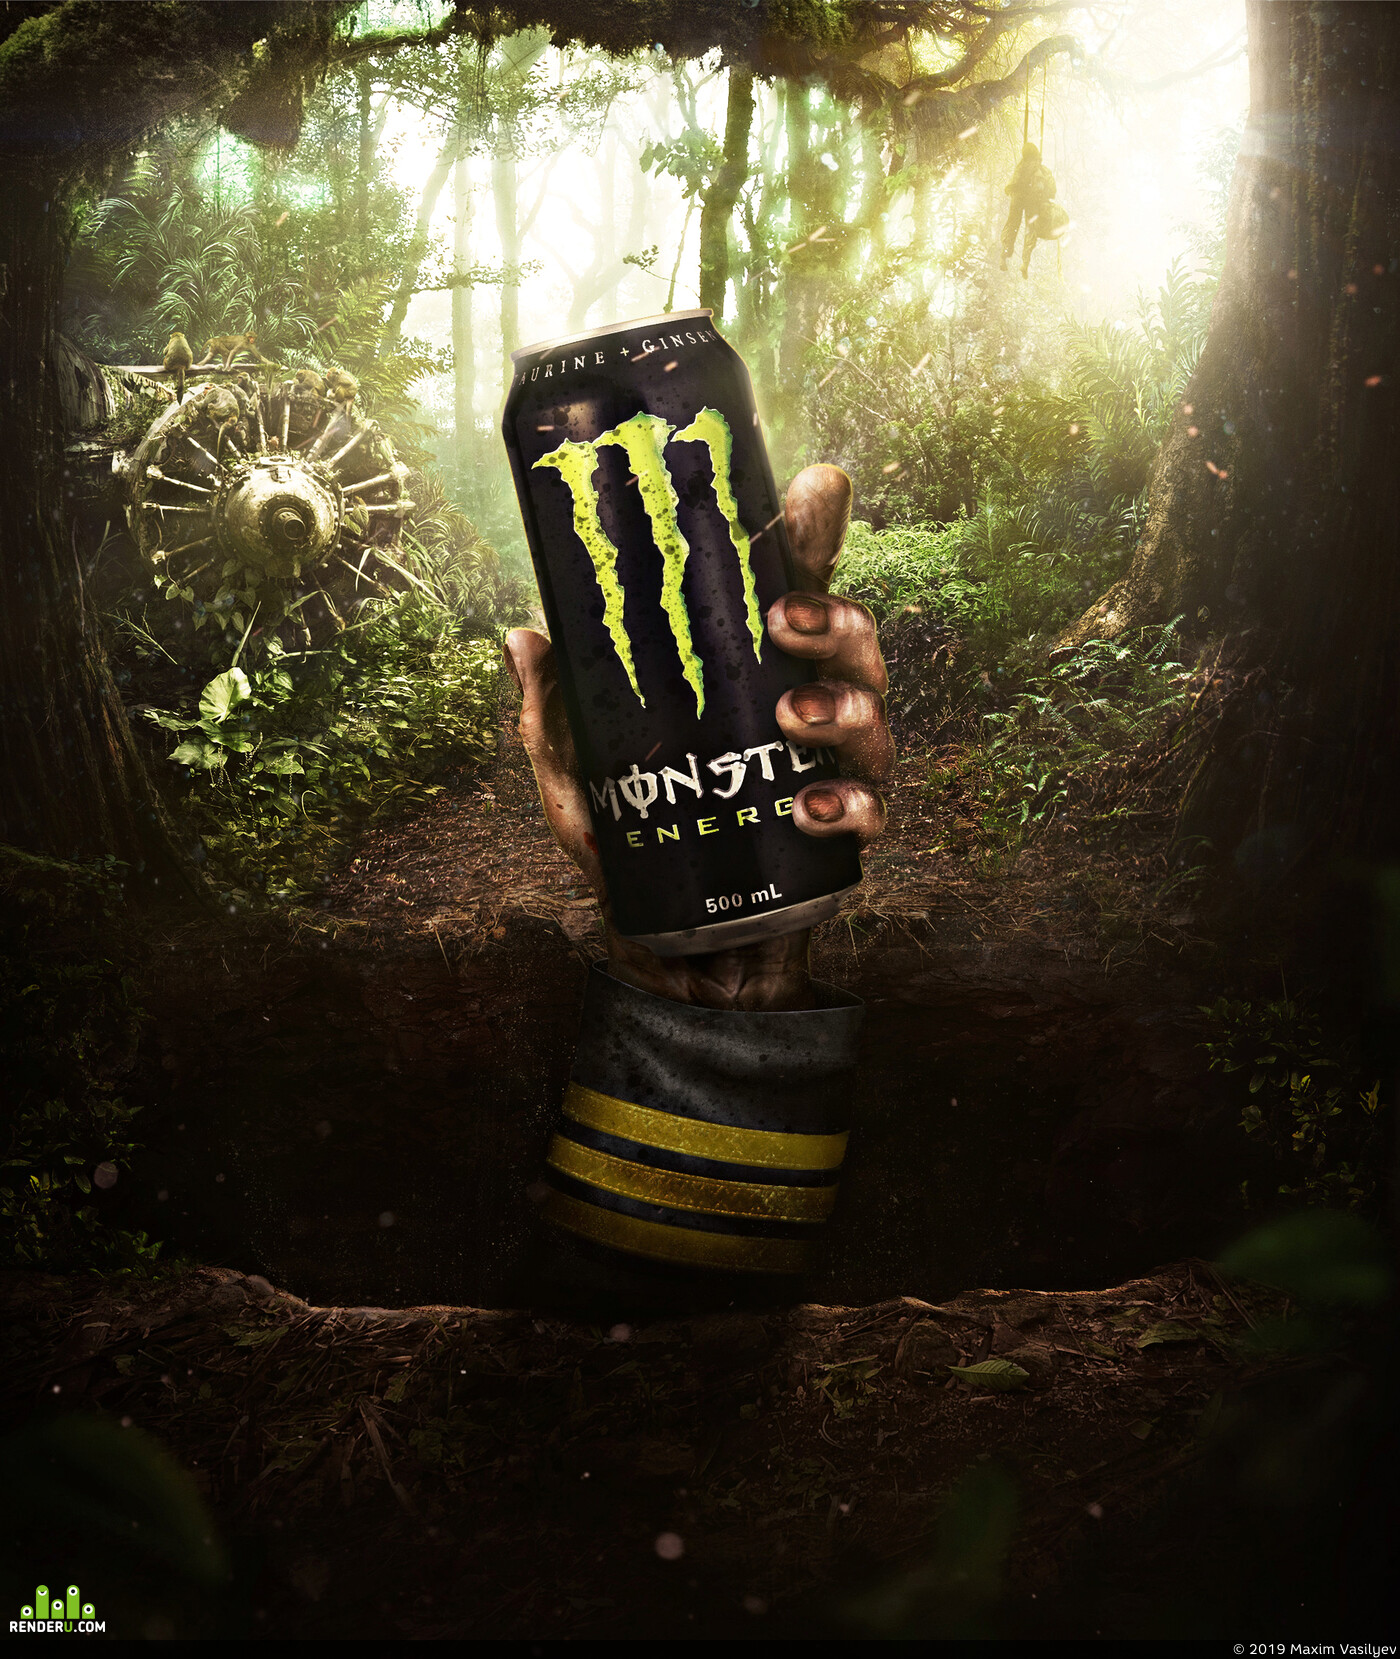 monster, energy drink, Зомби, джунгли, самолет, рука